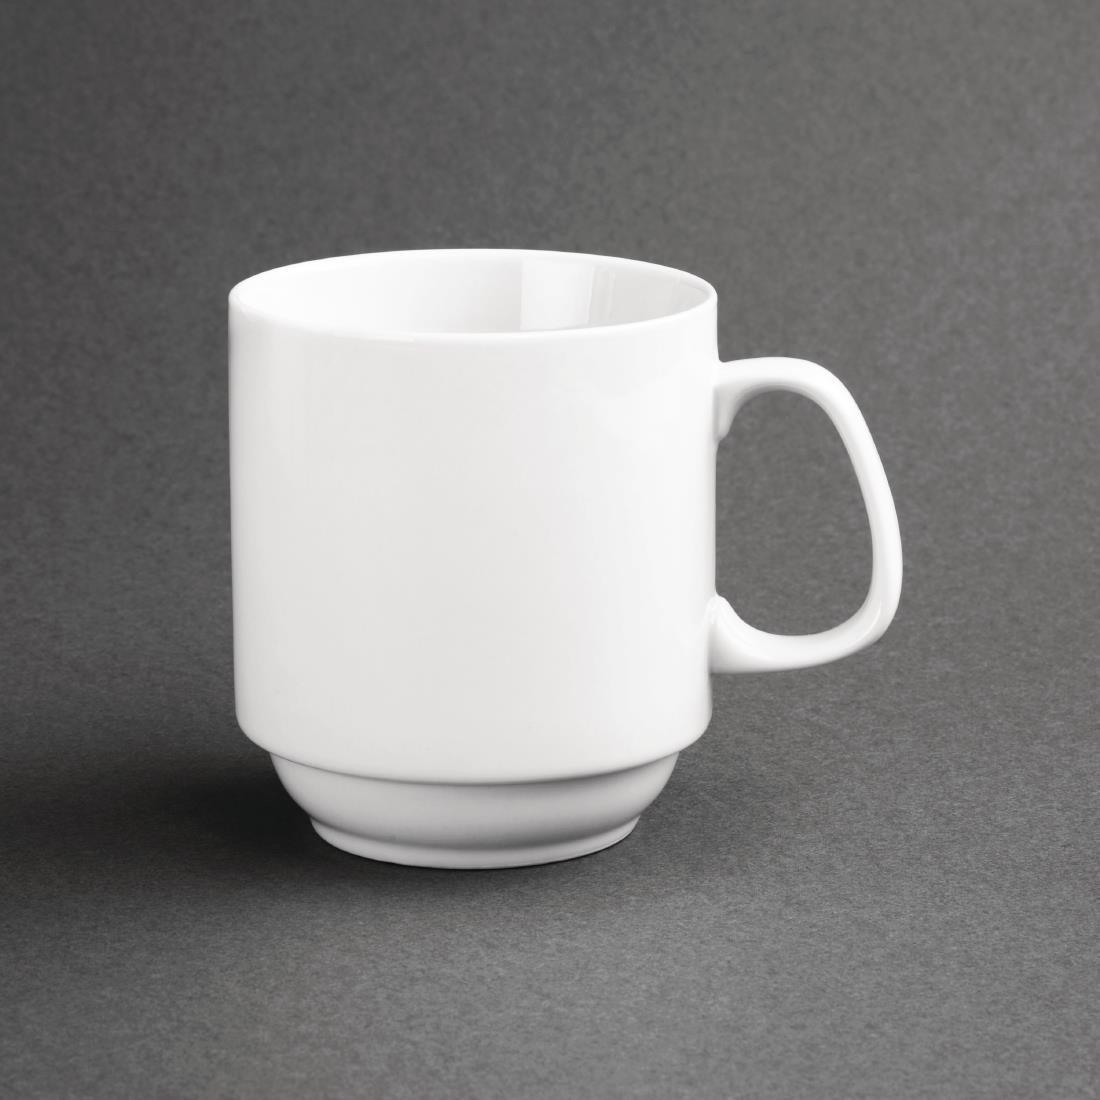 Olympia Whiteware Stacking Mugs 284ml 10oz